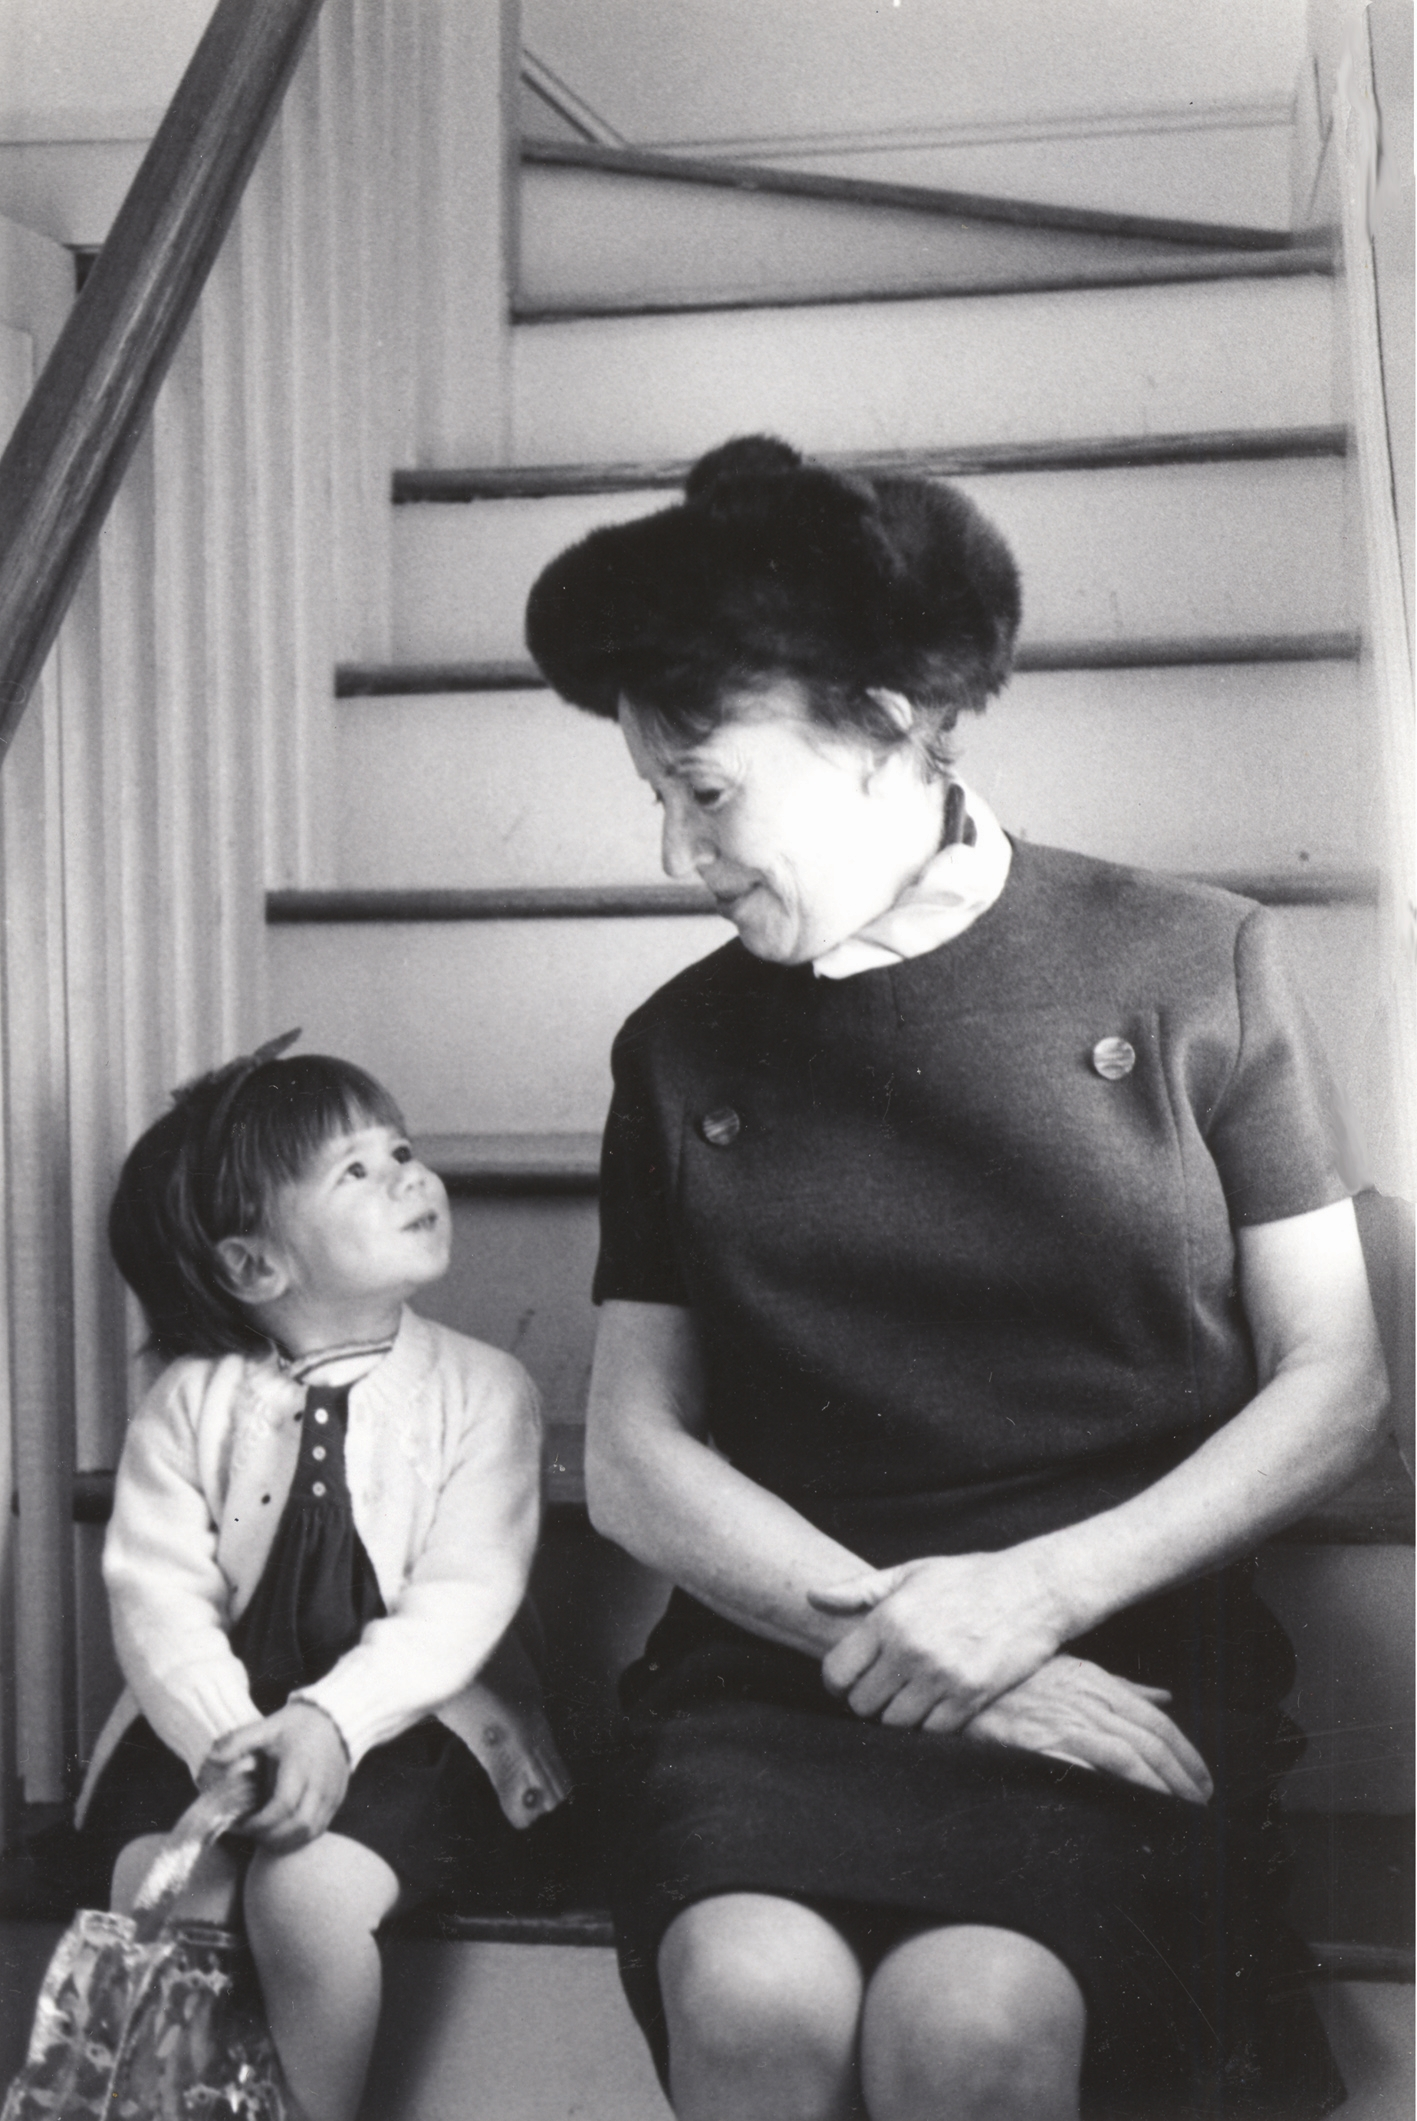 A small child sits next to her grandmother on the stairs in an old black and white photo.